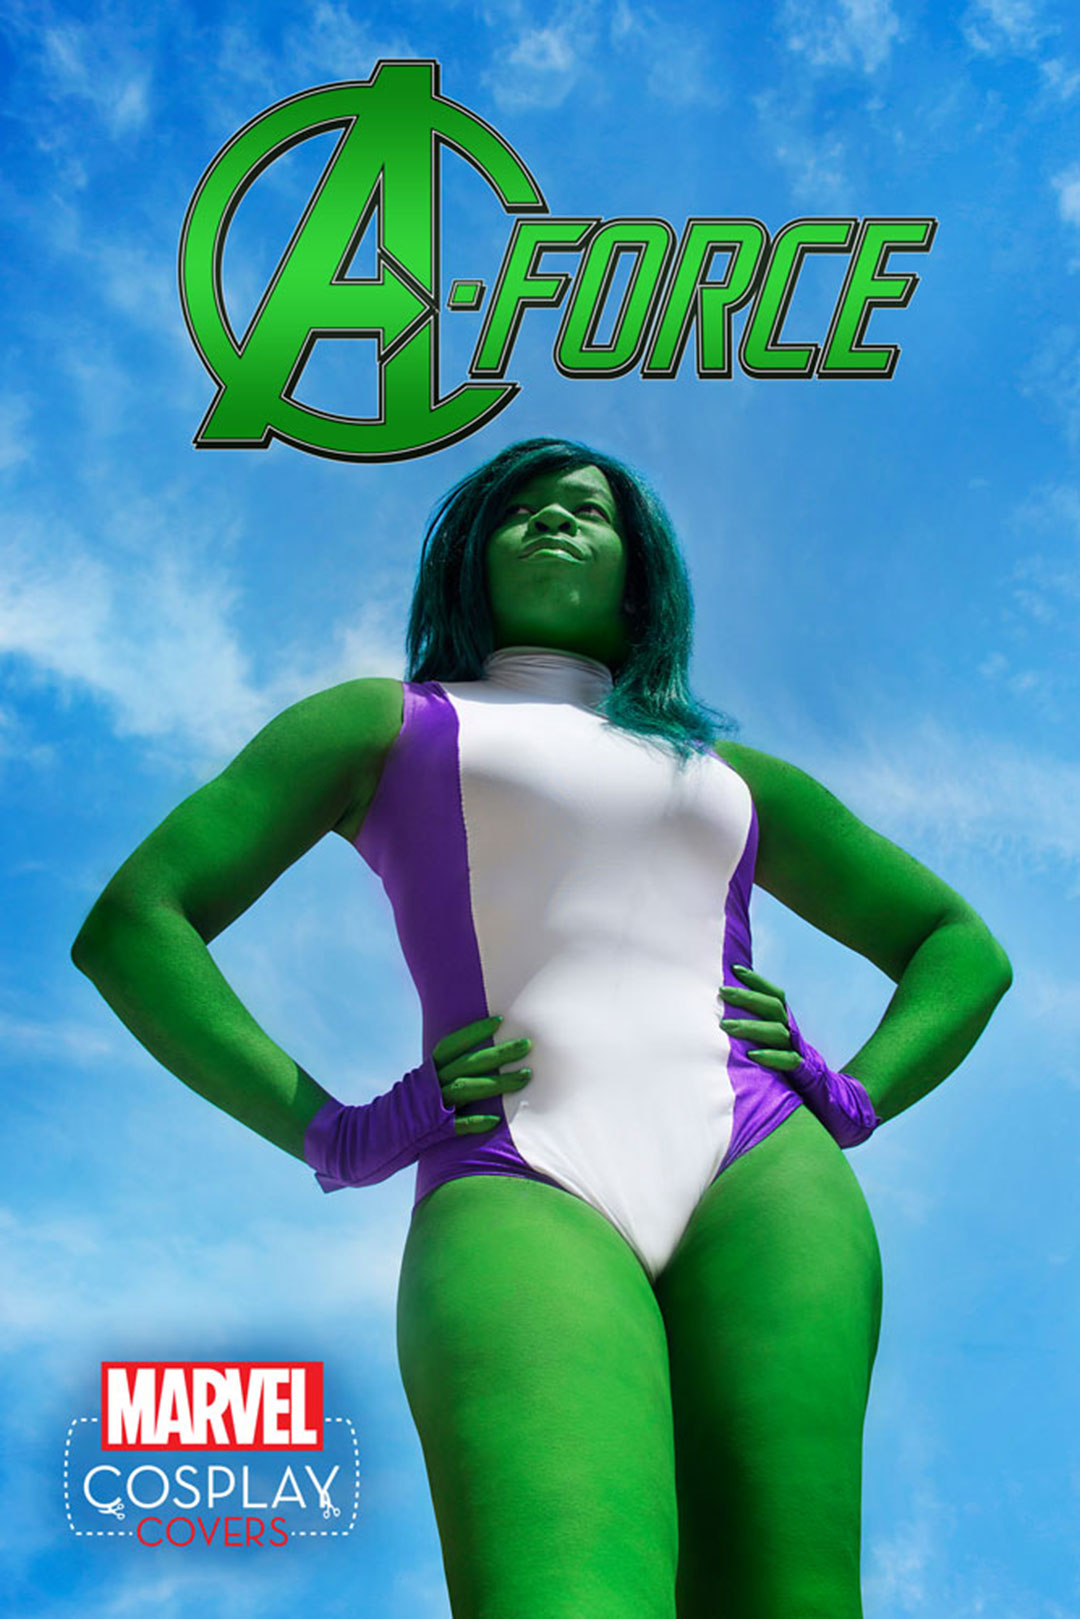 Couverture-Marvel-cosplay (10)